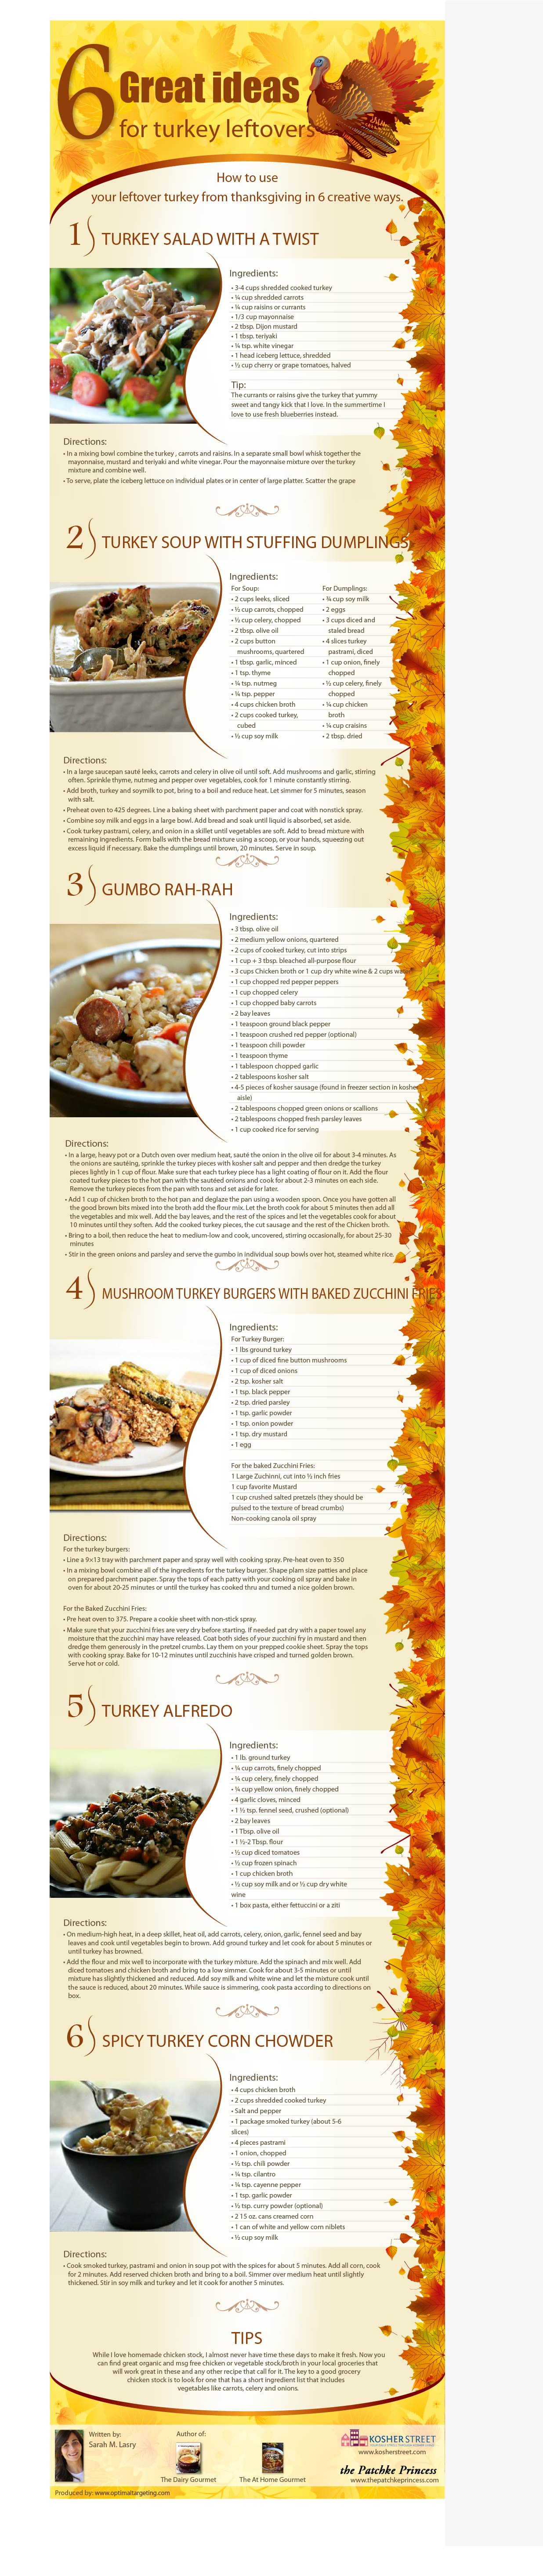 Thanksgiving Turkey Leftover Recipes For You To Try Infographic